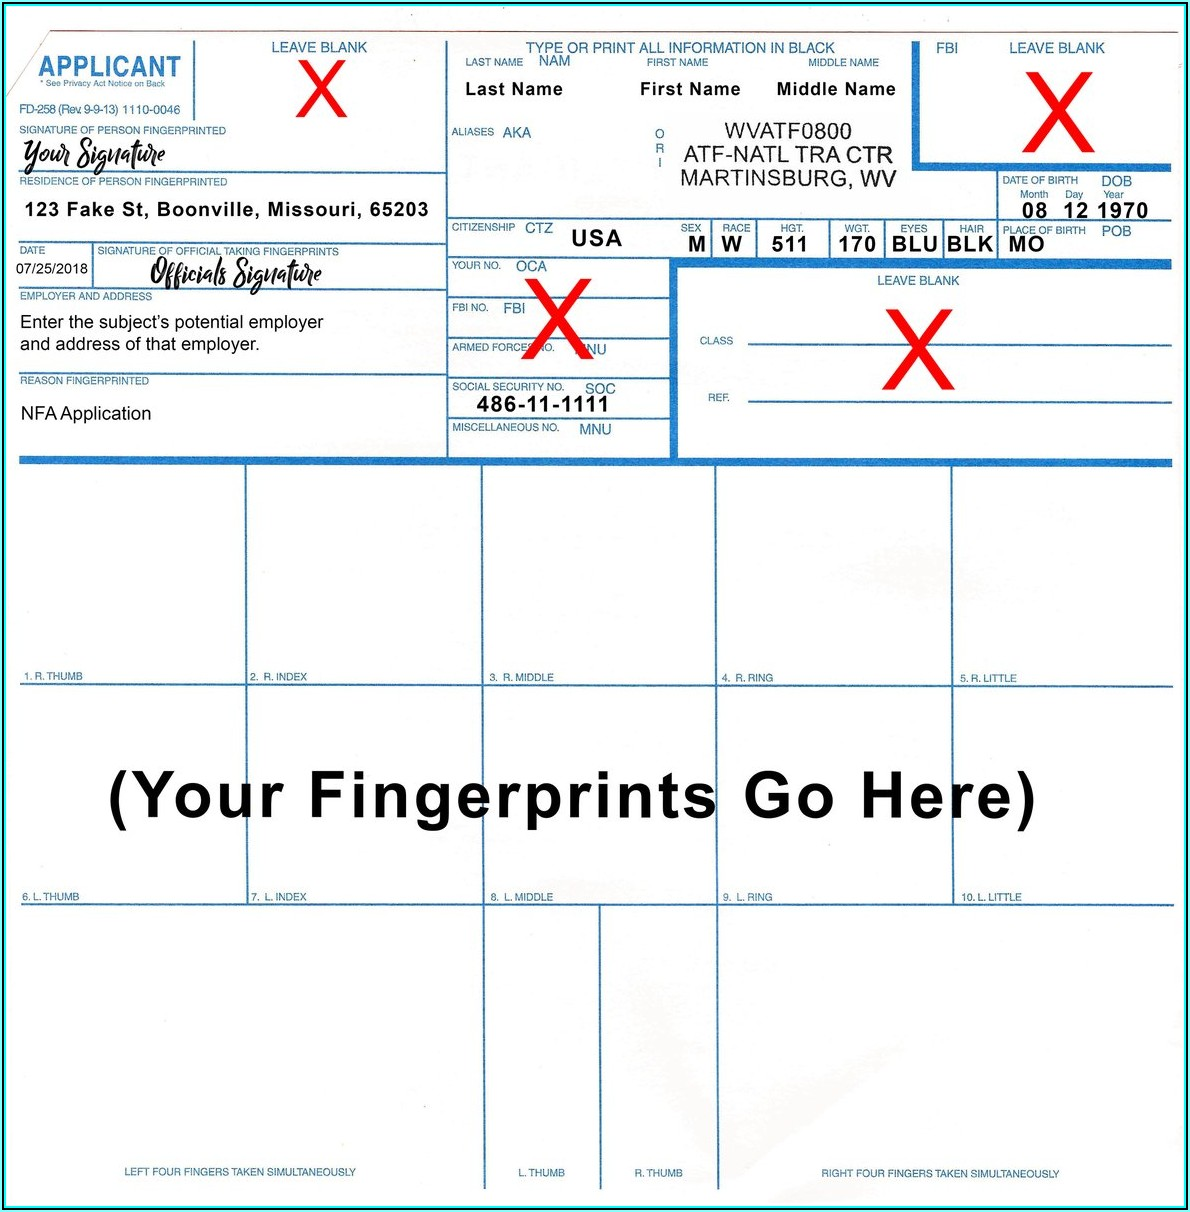 Applicant Fingerprint Card Form Fd 258